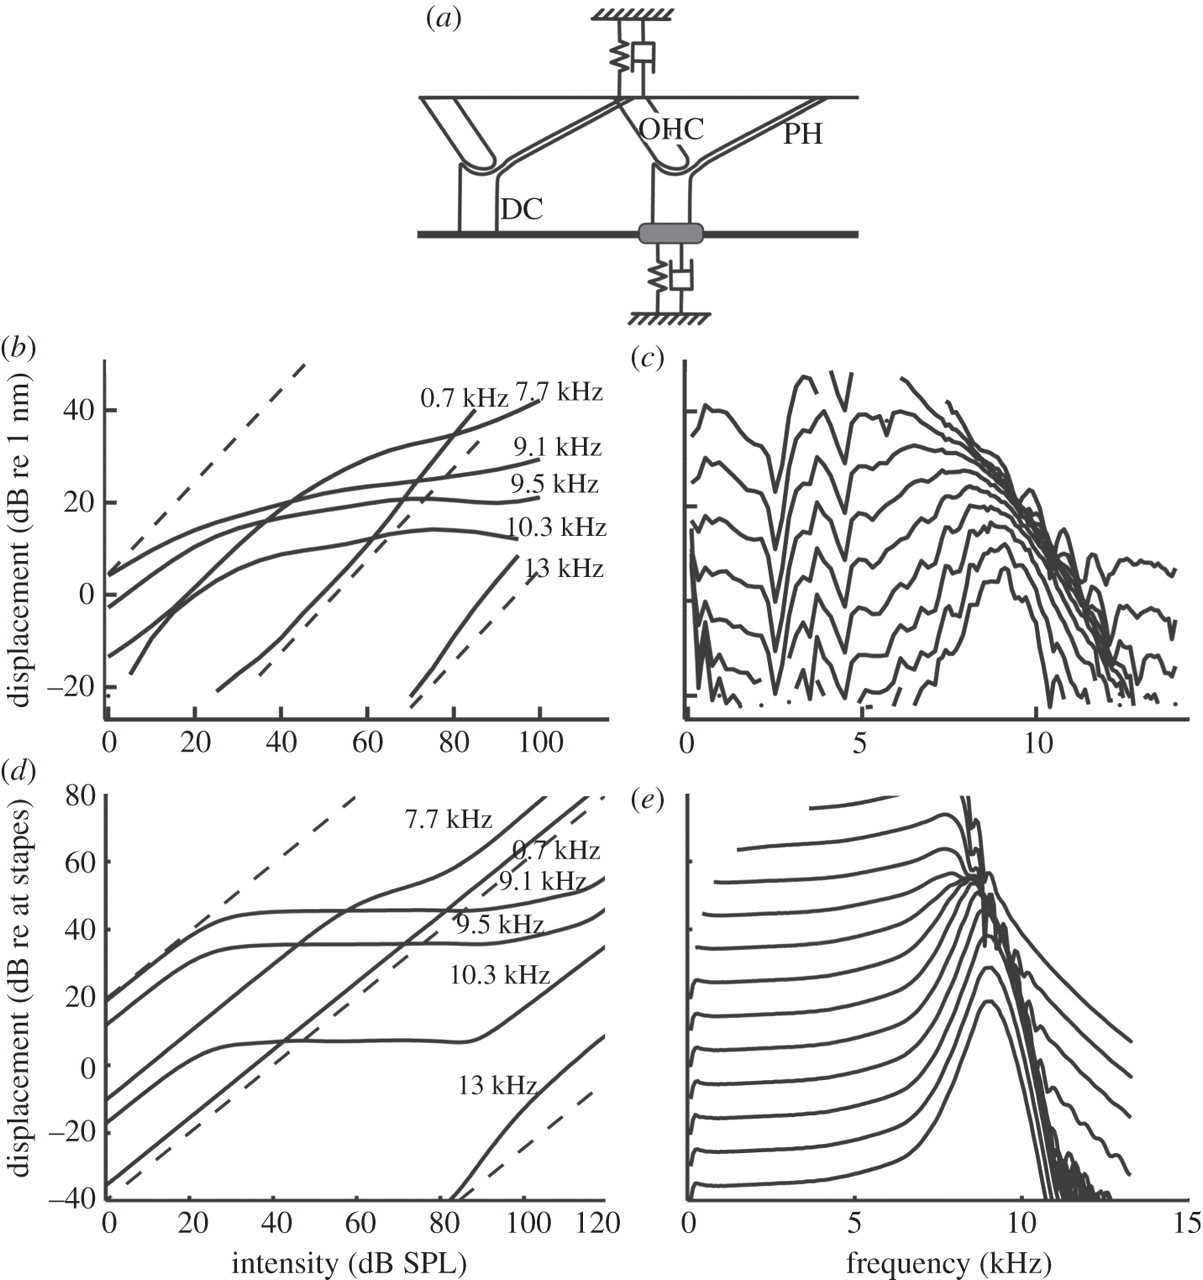 Nonlinear Models Of Development Amplification And Compression In The Mammalian Cochlea